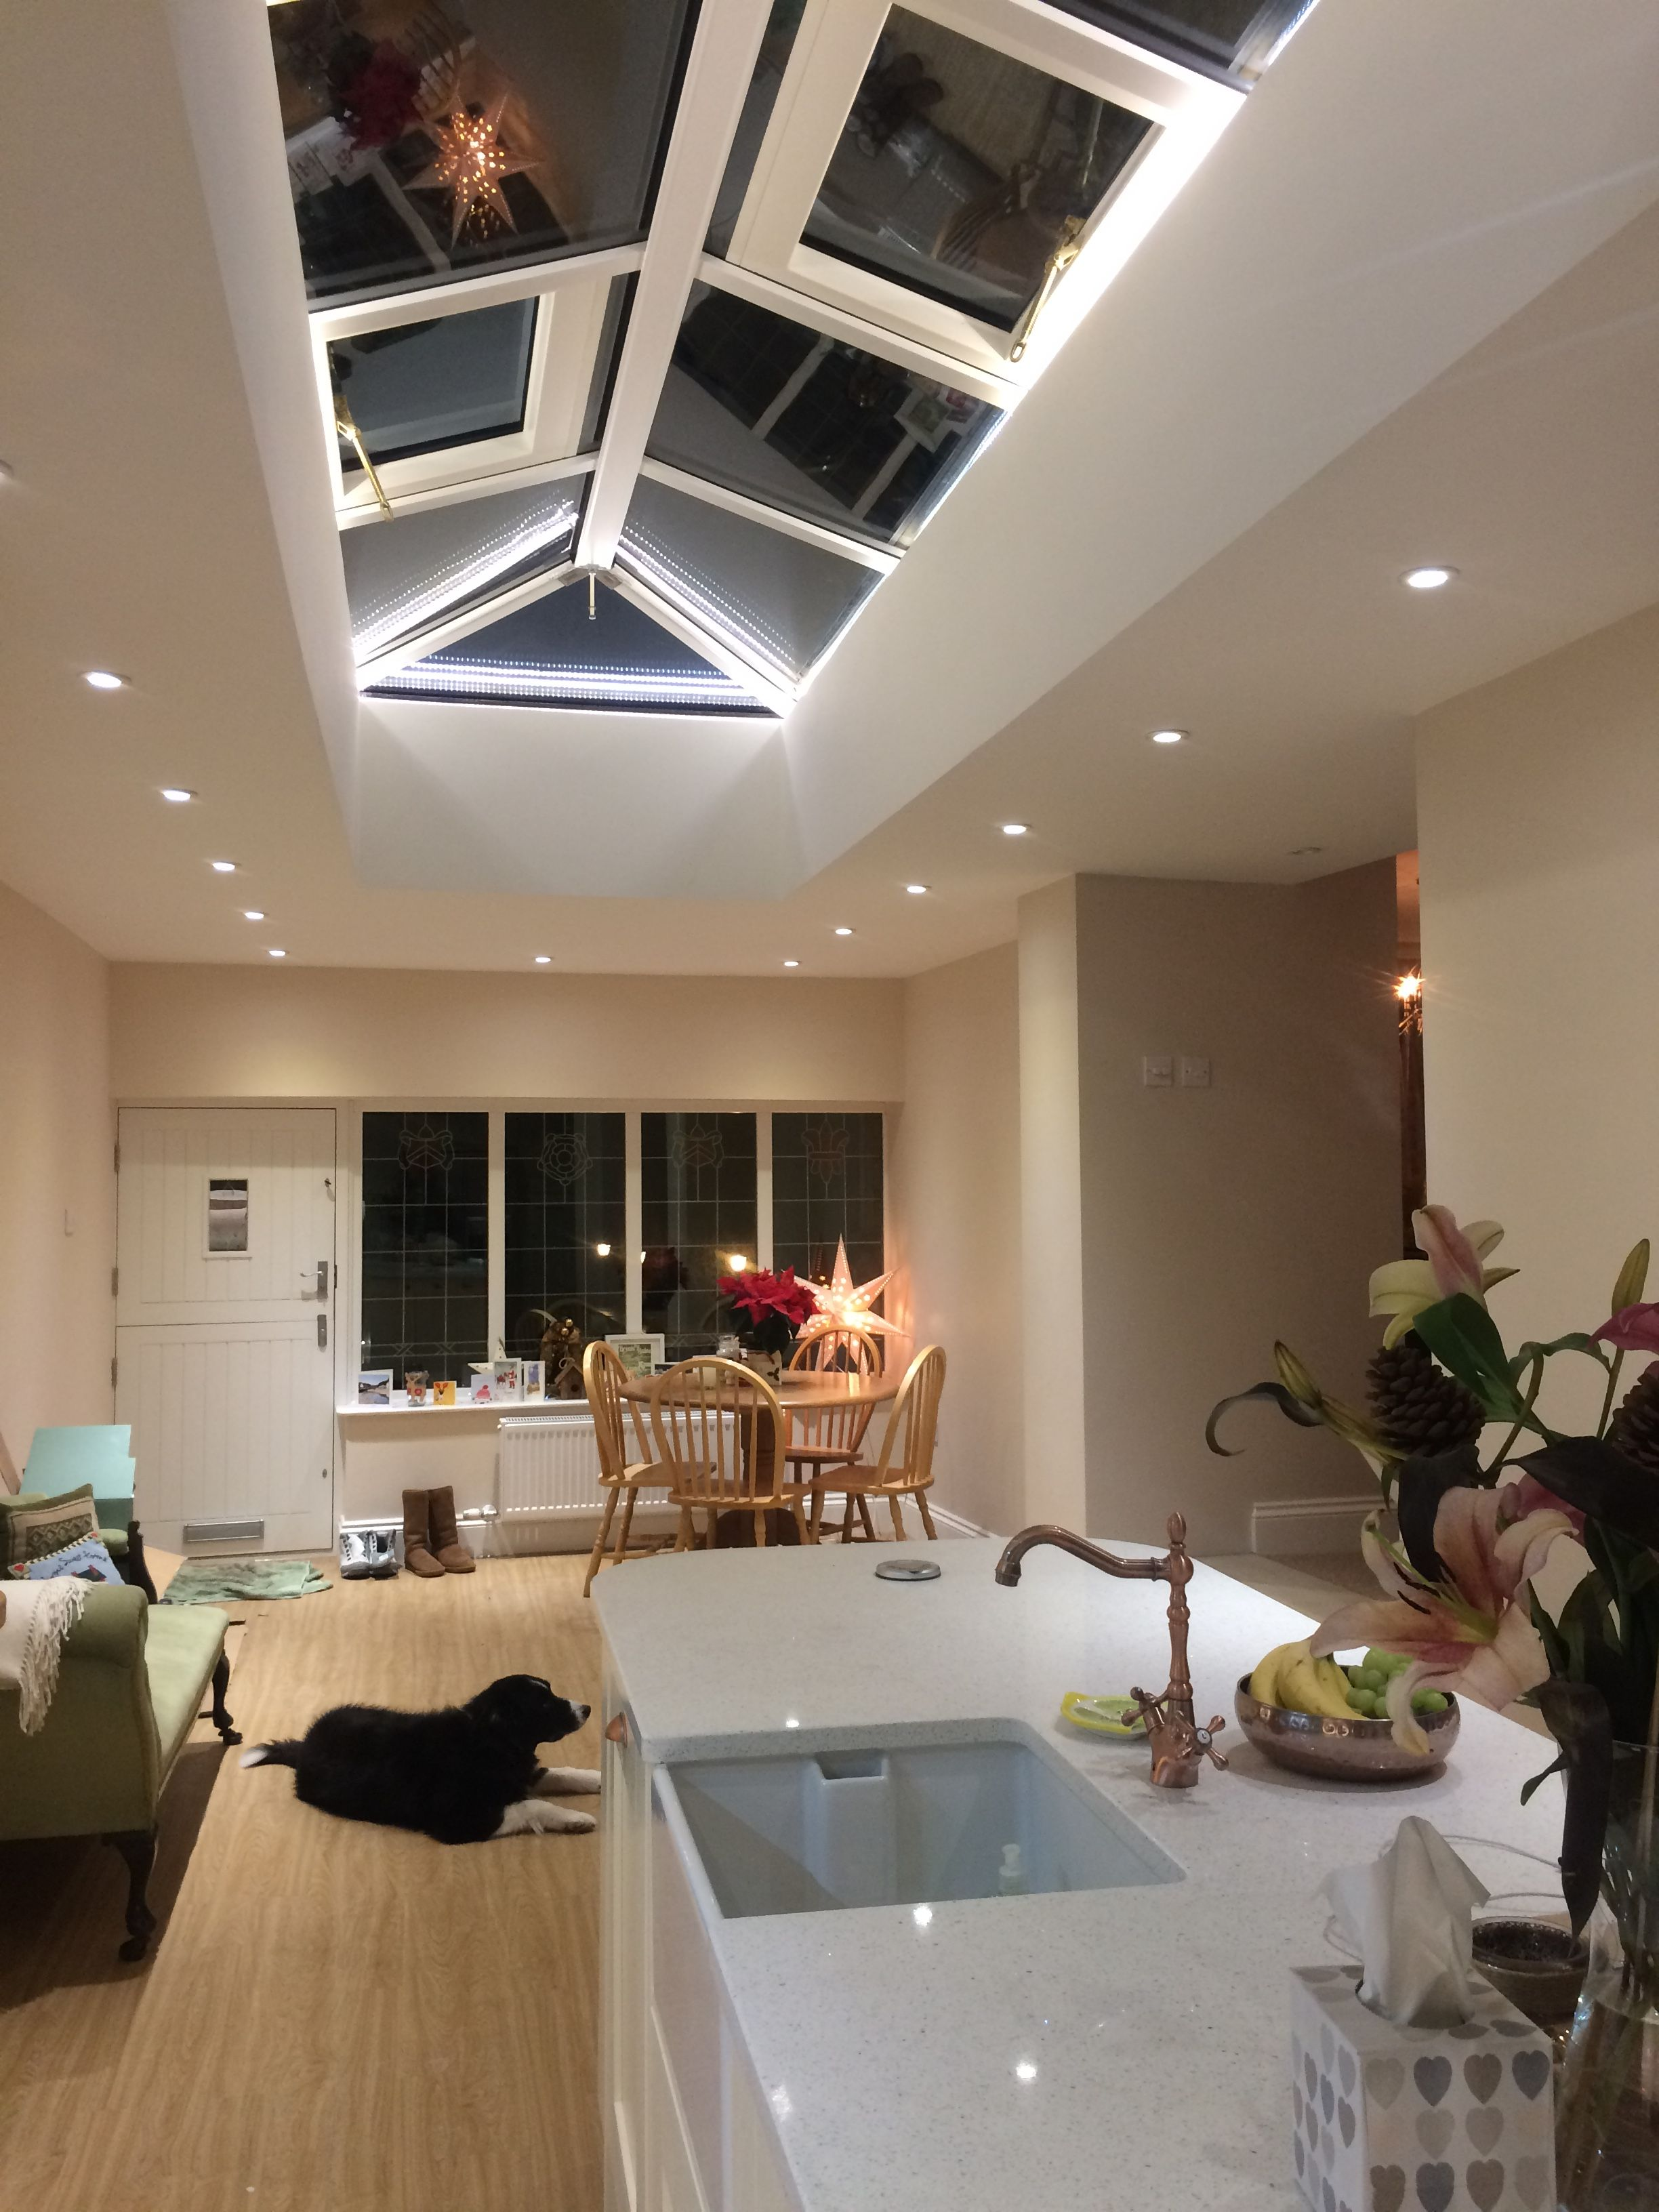 The Roof Lantern Light Has Led Strip Lights Hidden Within It Which Look Fantastic At Night Ceiling Light Design Lighting Design Interior Roof Lantern